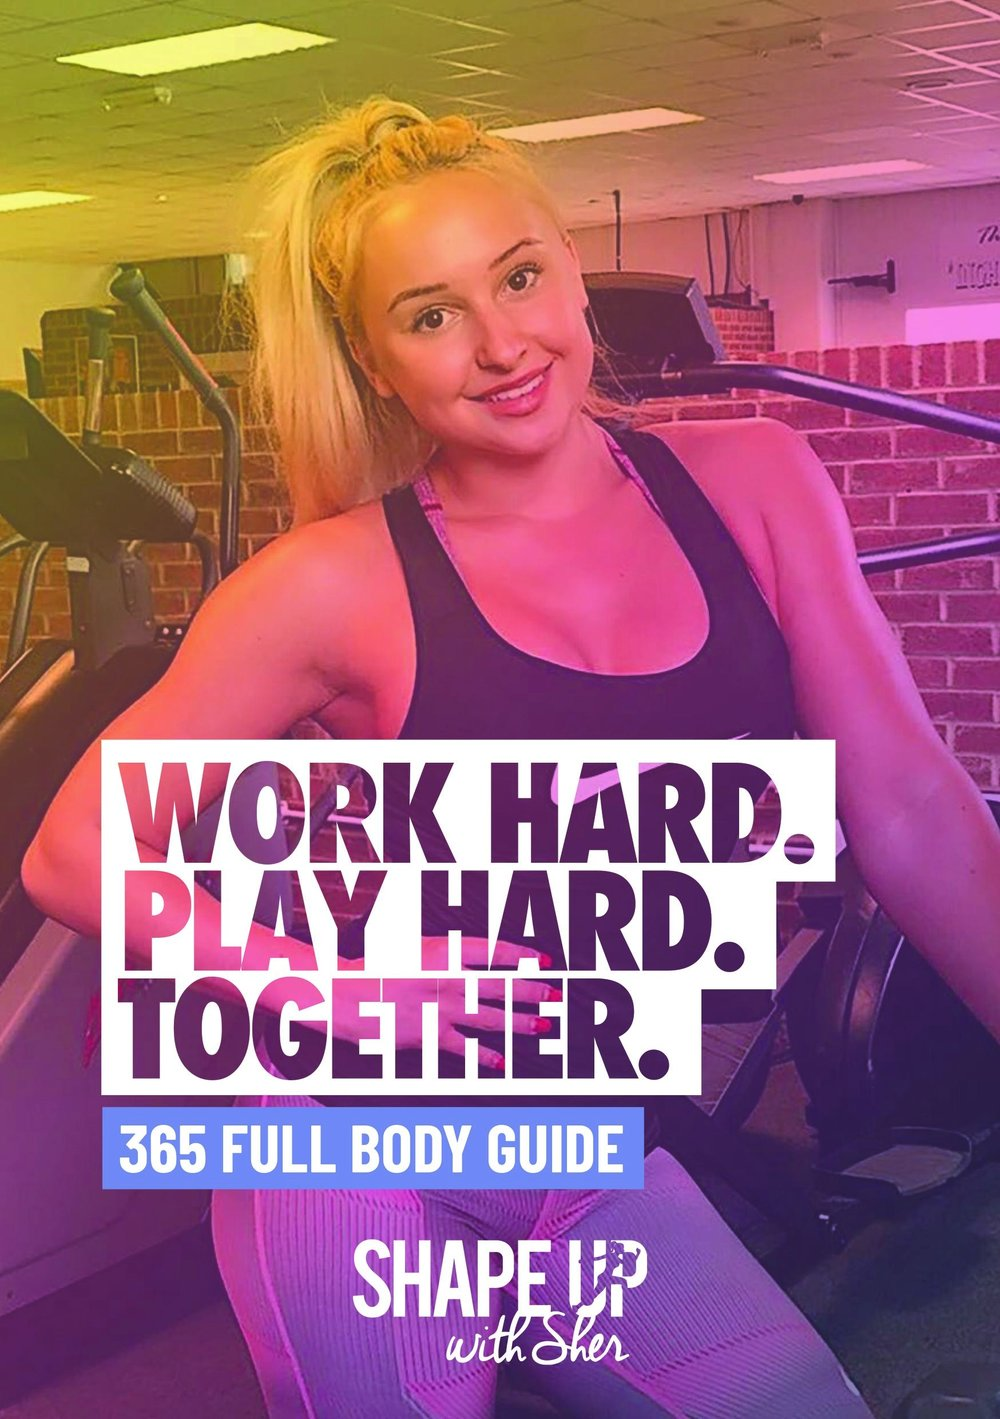 8 WEEK - 365 FULL BODY GUIDE - Girls it's time to ditch the boring cardio. Let's see some REAL RESULTS!The NEW 8 Week 365 Full Body Guide, containing upper body and lower body gym workouts!Loose body fat, gain lean sexy muscle, toned back/arms and improve your overall conditioning. Feel super confident, fit and healthy.